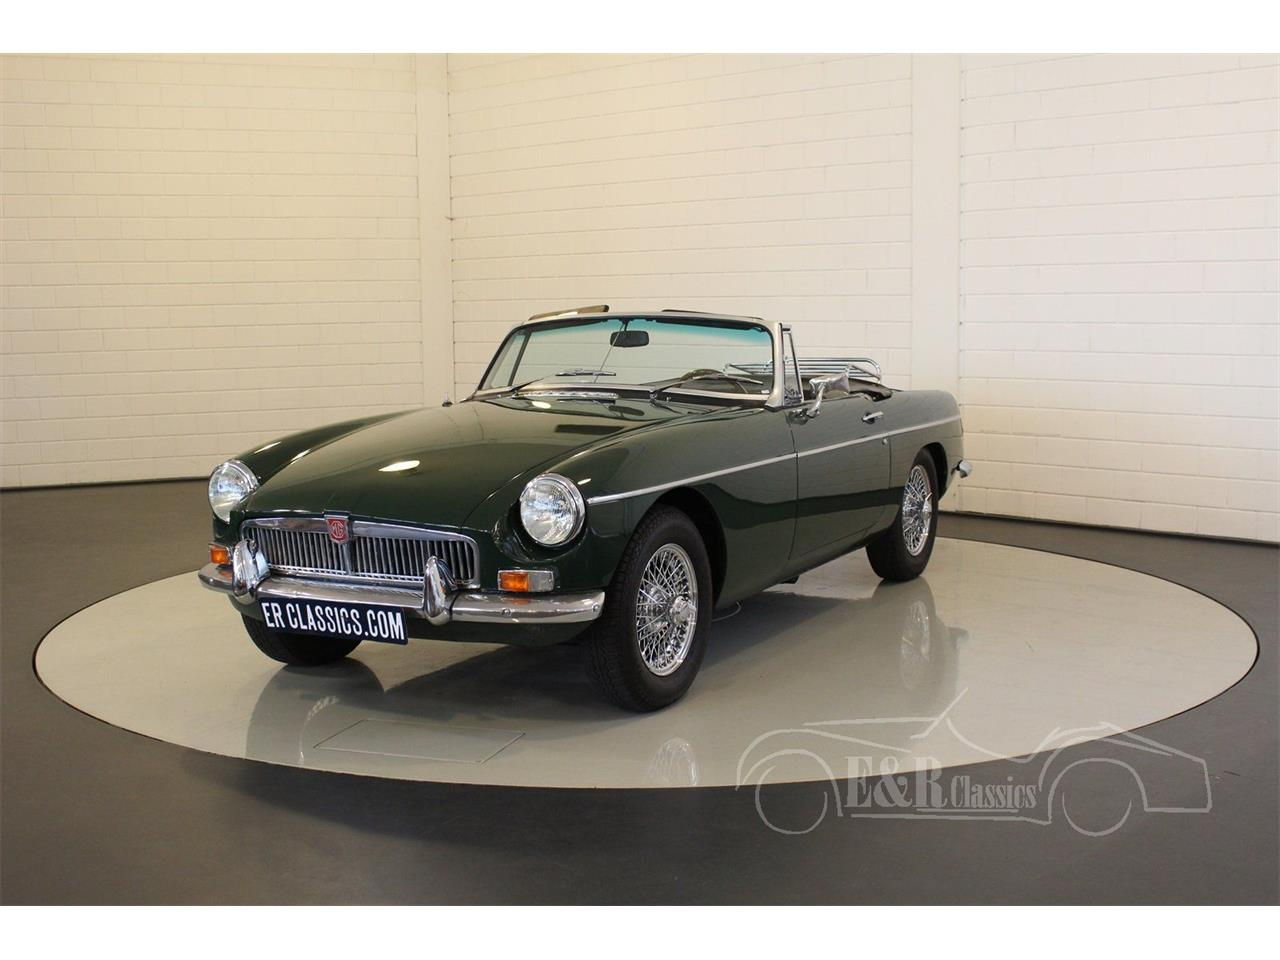 Large Picture of 1964 MG MGB located in Waalwijk noord brabant - $27,950.00 Offered by E & R Classics - Q178